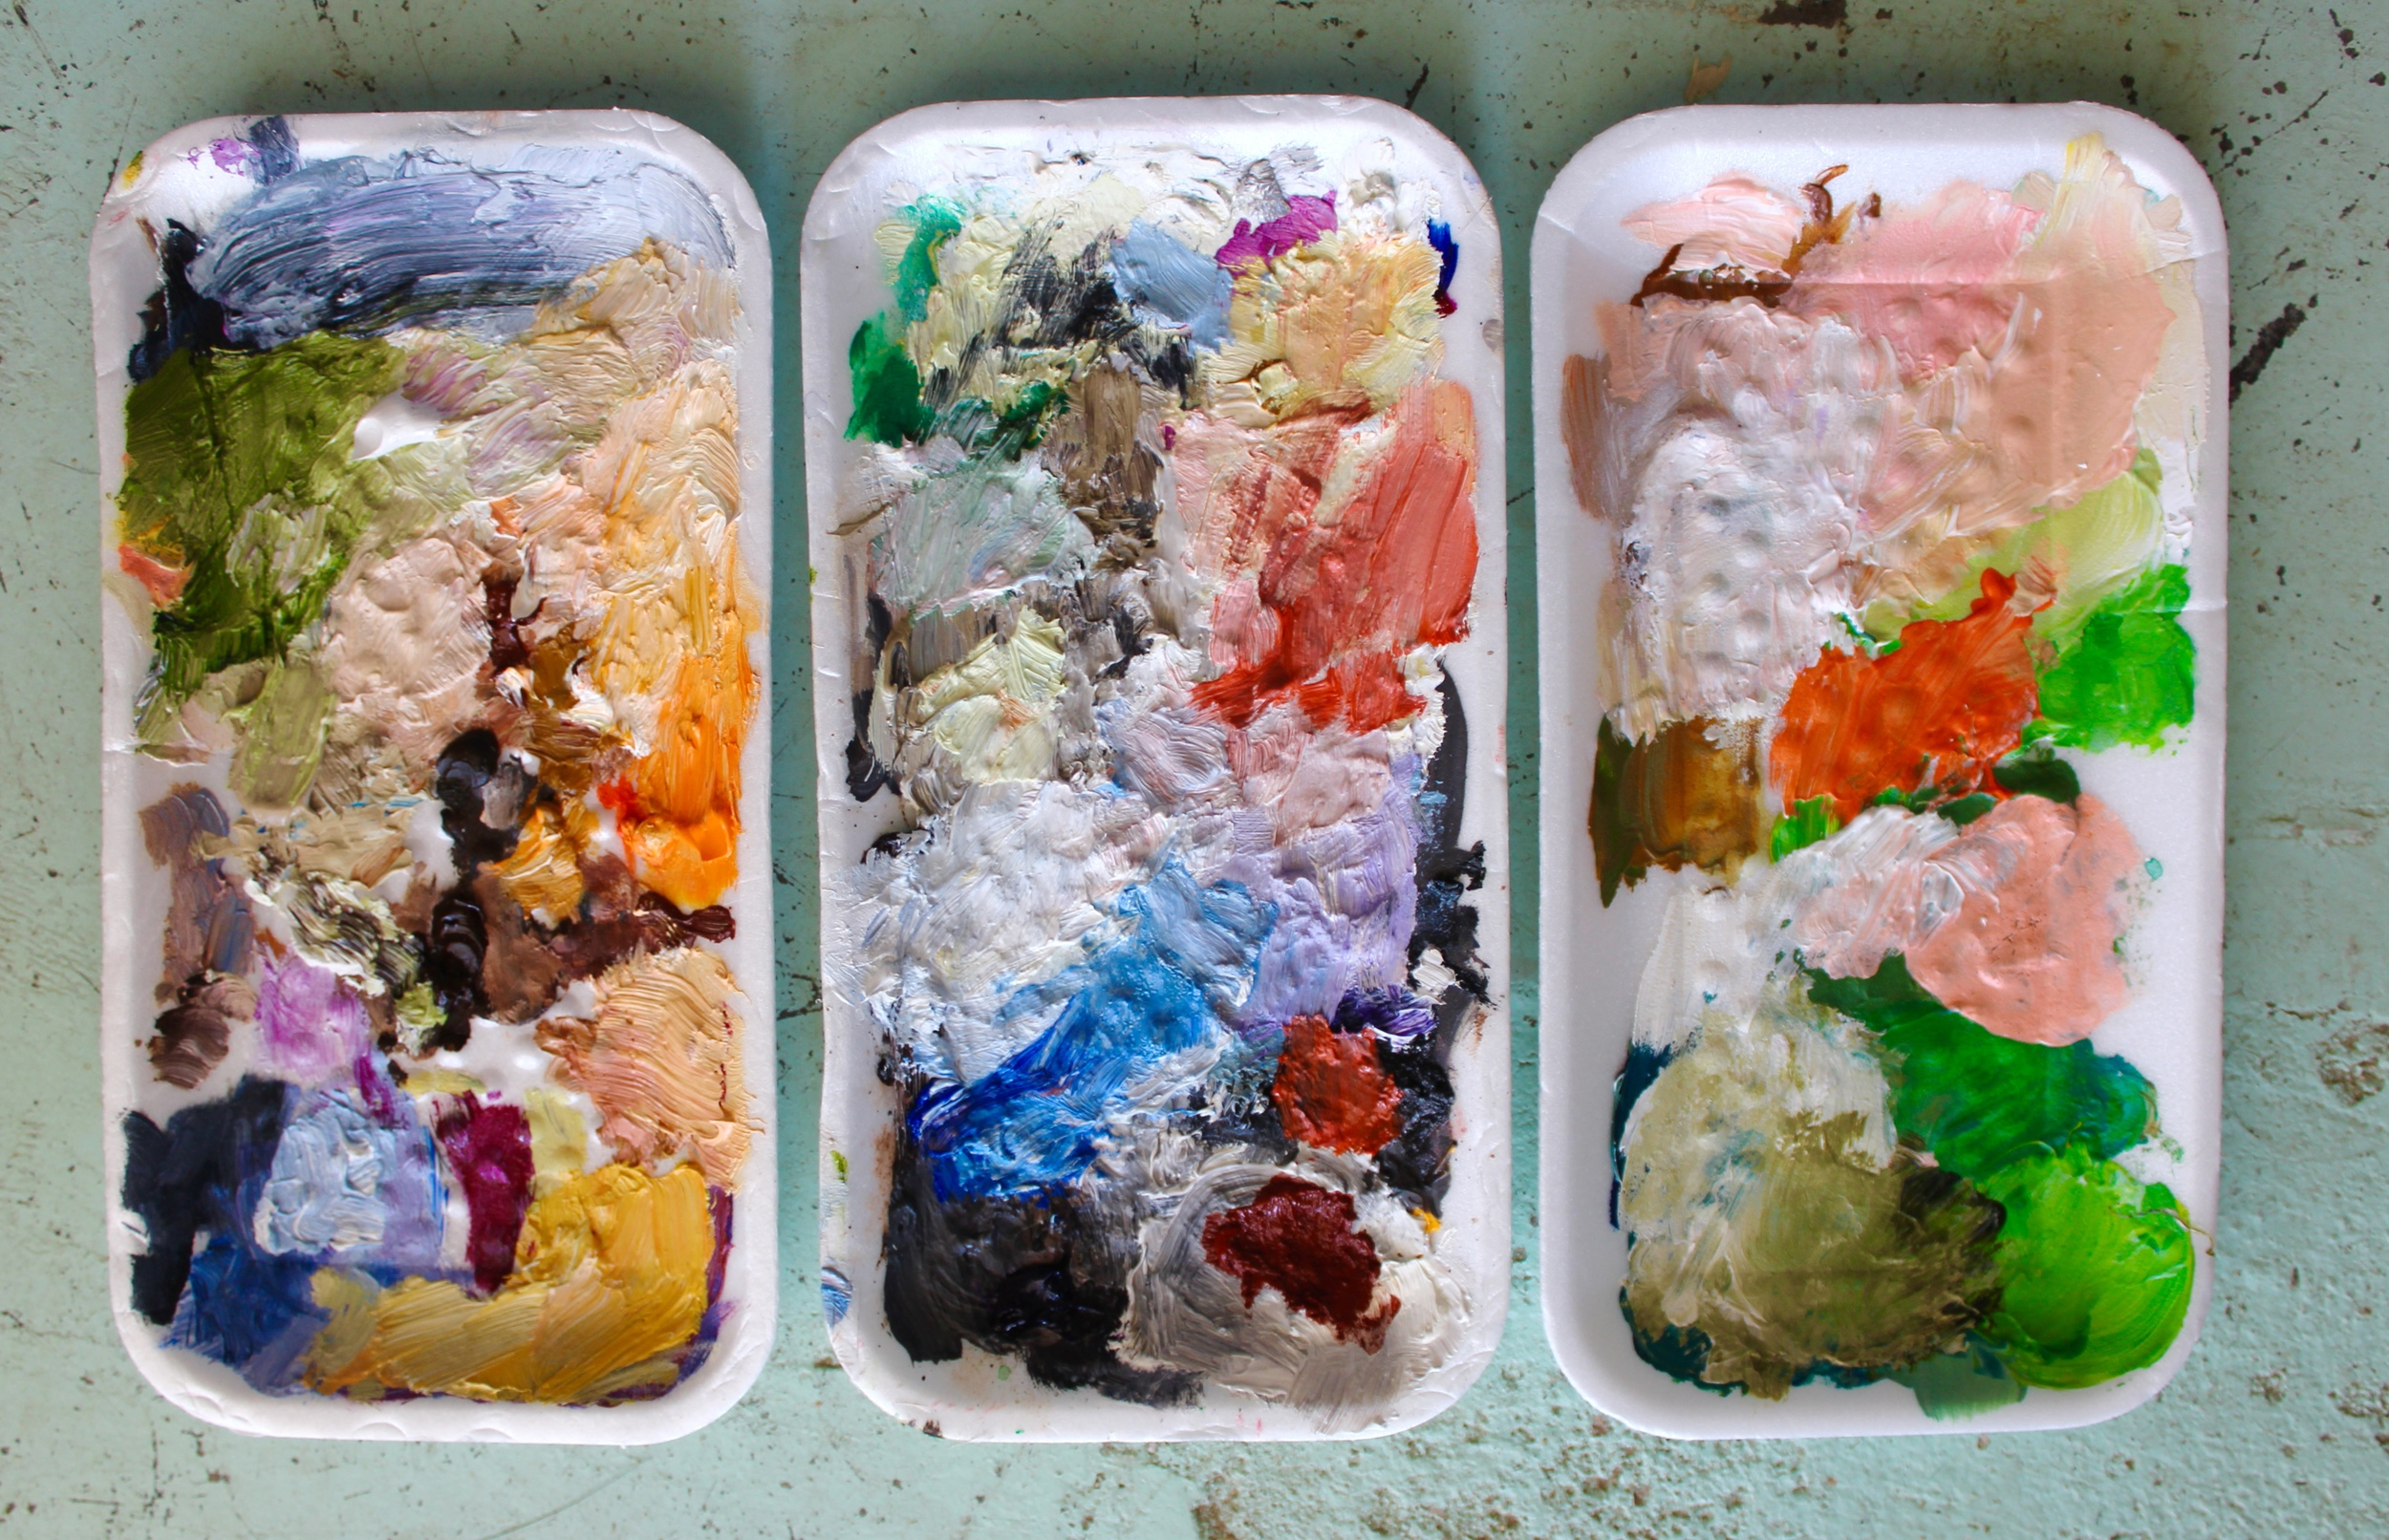 I usually use various food containers as palettes (here's several that used to house shiitake mushrooms from Trader Joe's).